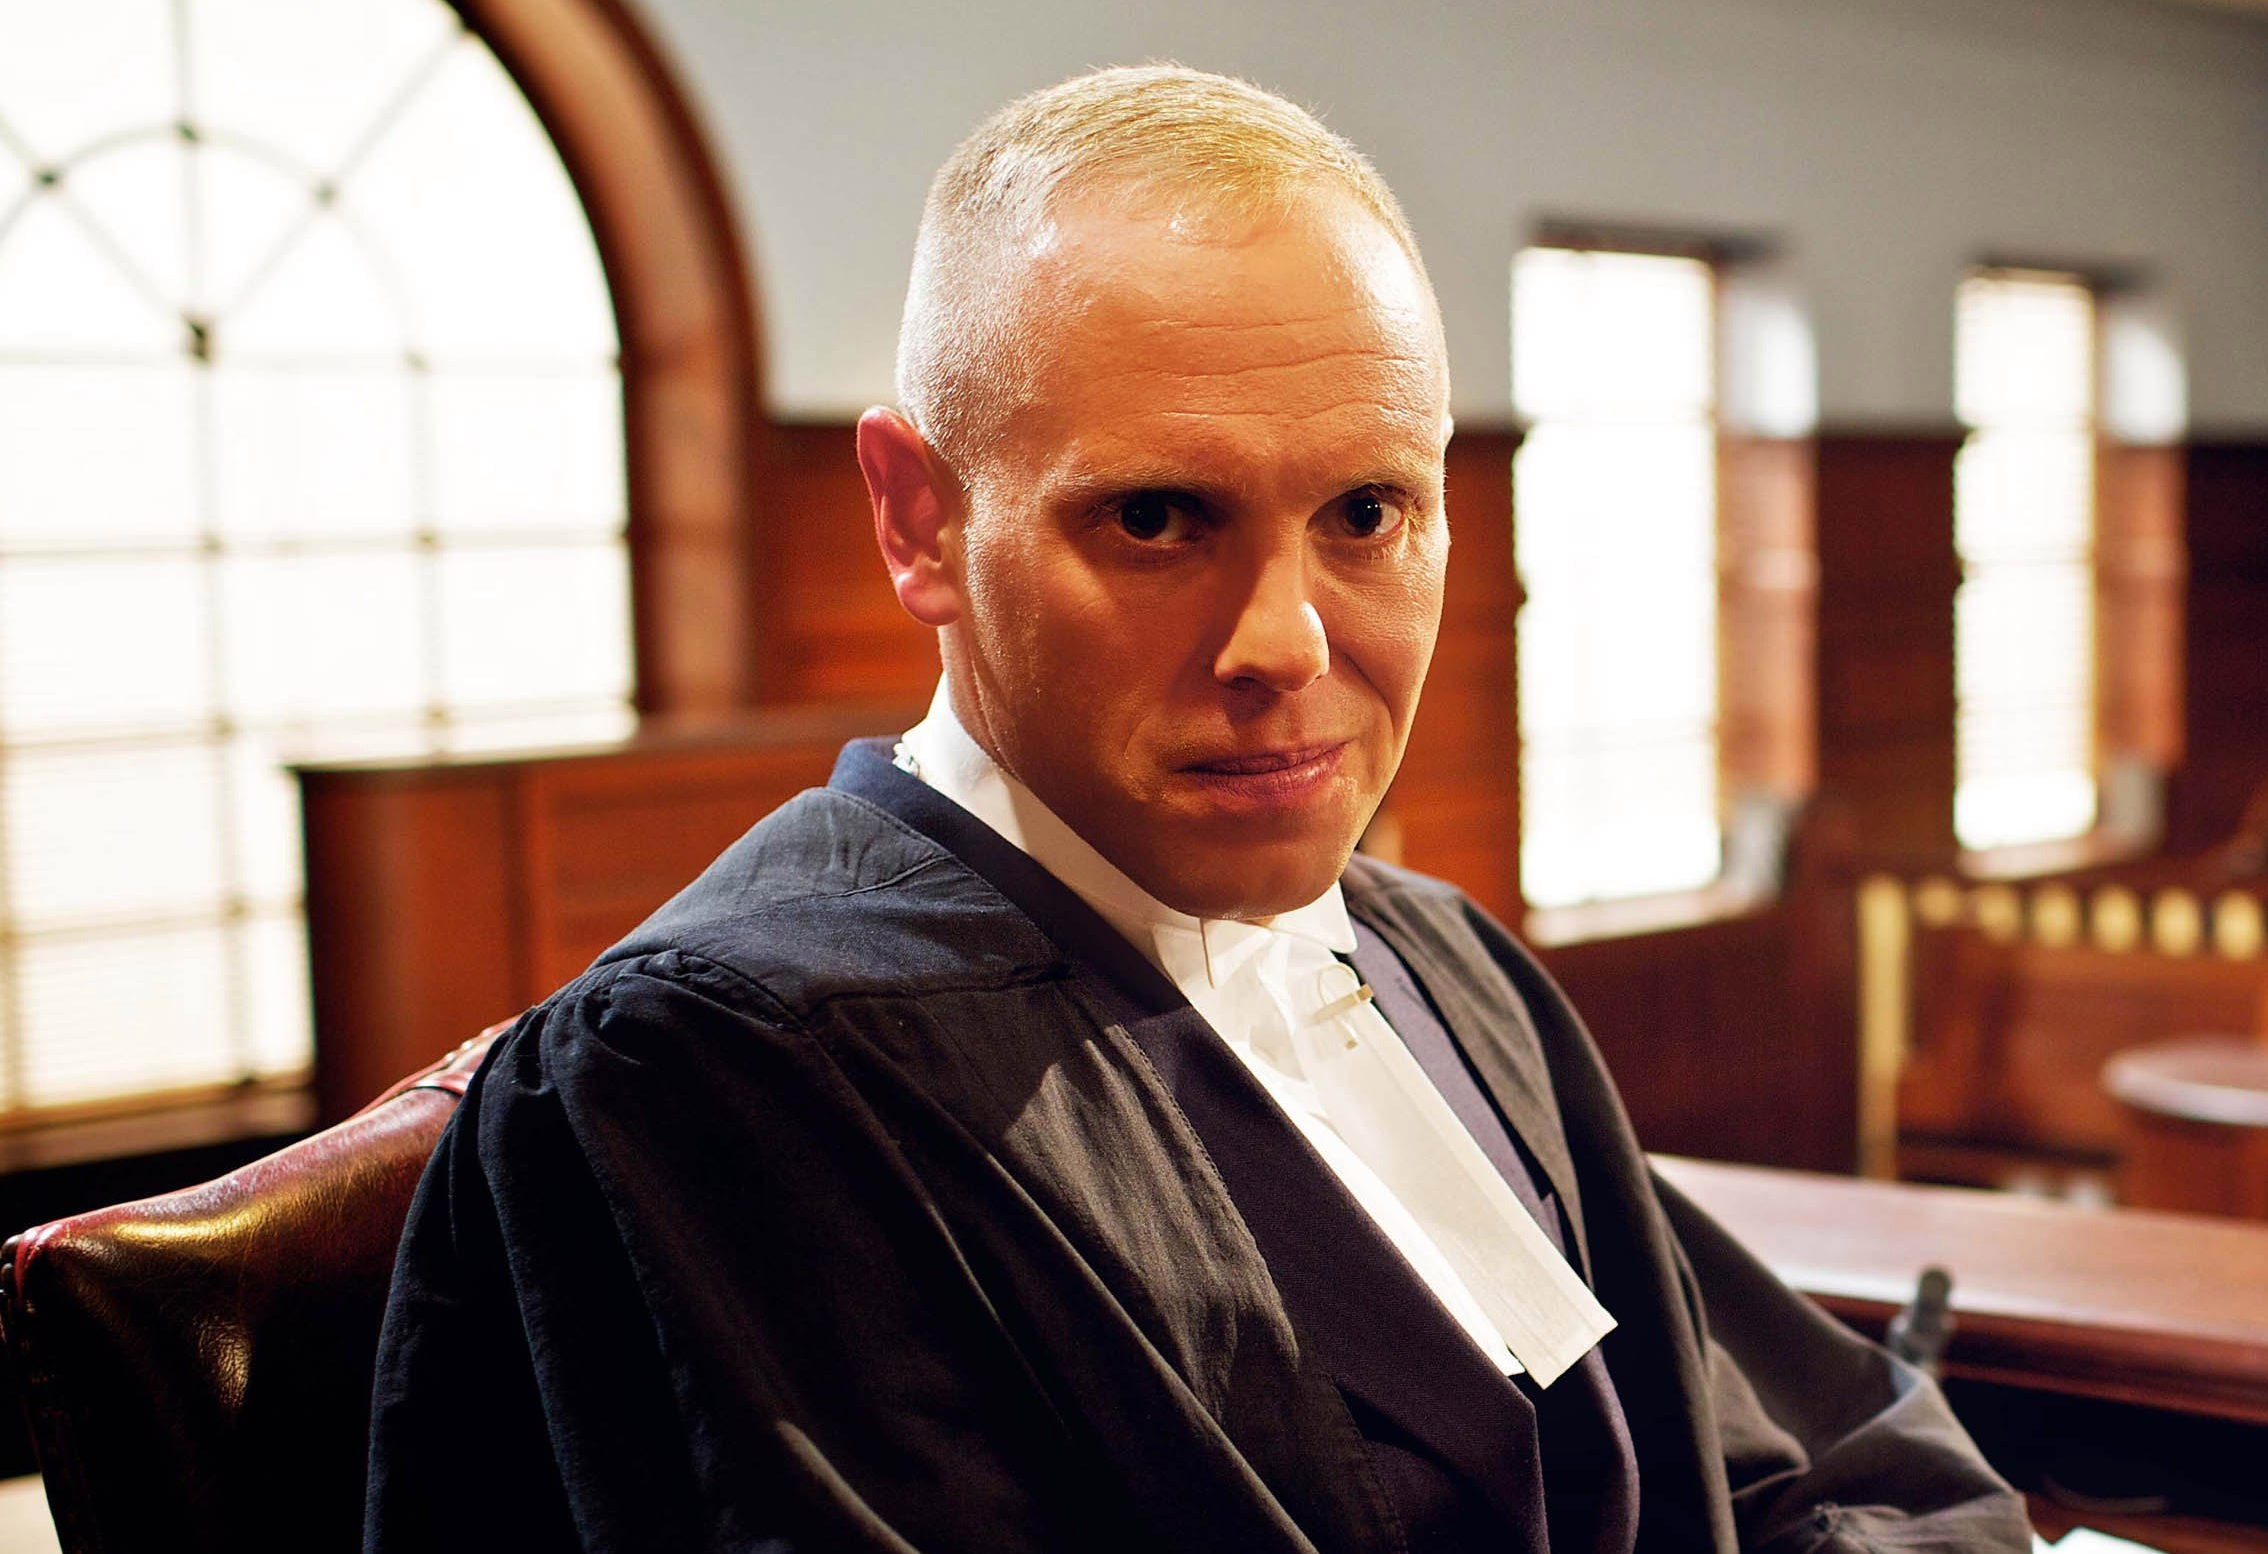 Judge Rinder's answers do not constitute legal advice and are not a substitute for obtaining independent legal advice